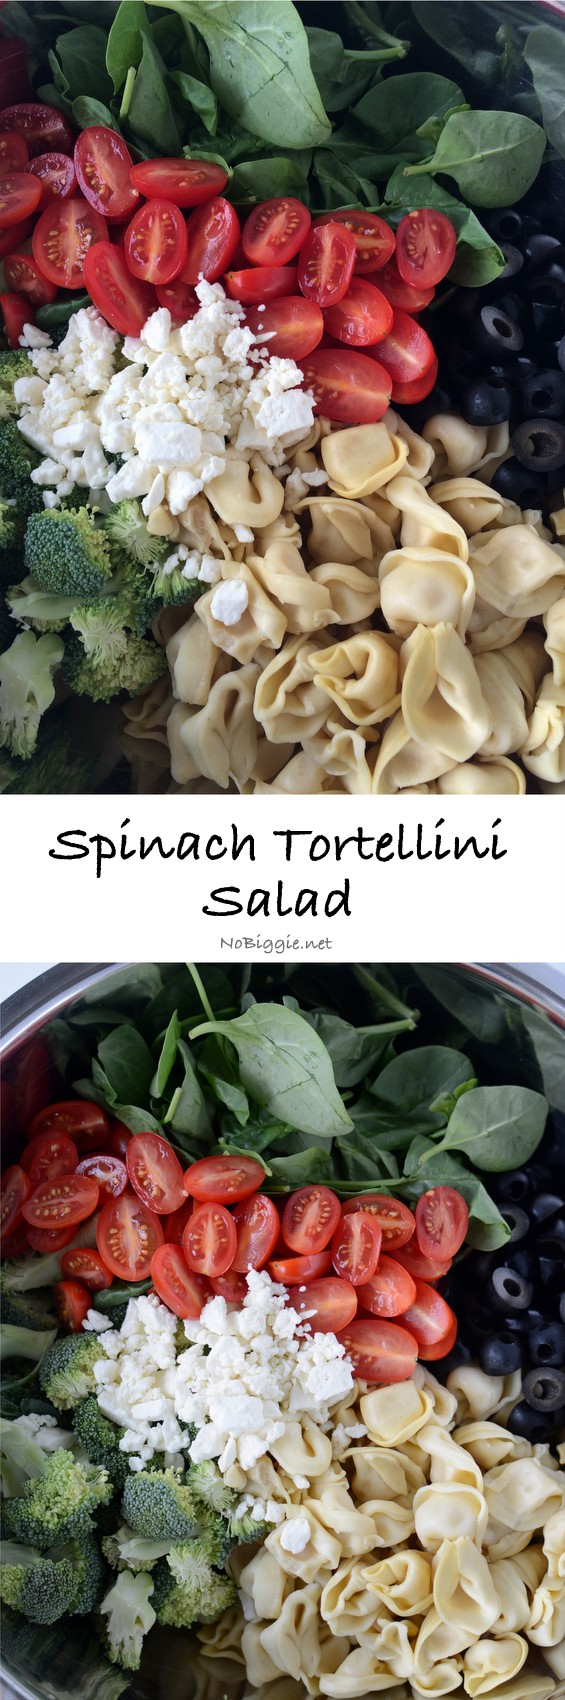 Spinach Tortellini Salad -  It's perfect during BBQ Season, picnics and big family gatherings. #spinachtortellinisalad #spinachtortellini #spinach #tortellini #saladrecips